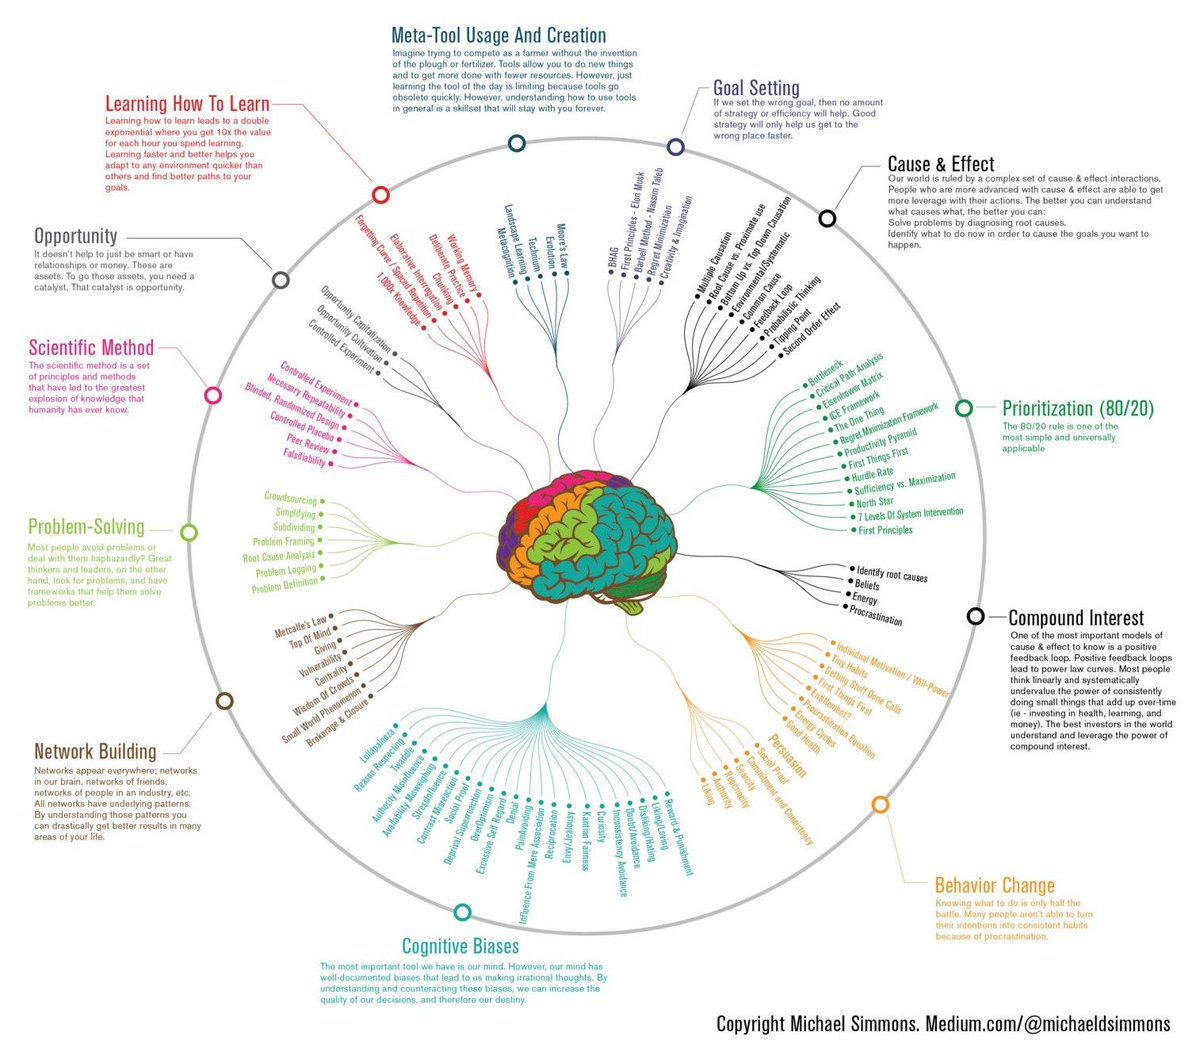 12 ways to get smarter – in one chart https://t.co/8nX8SdTwdI #leadership